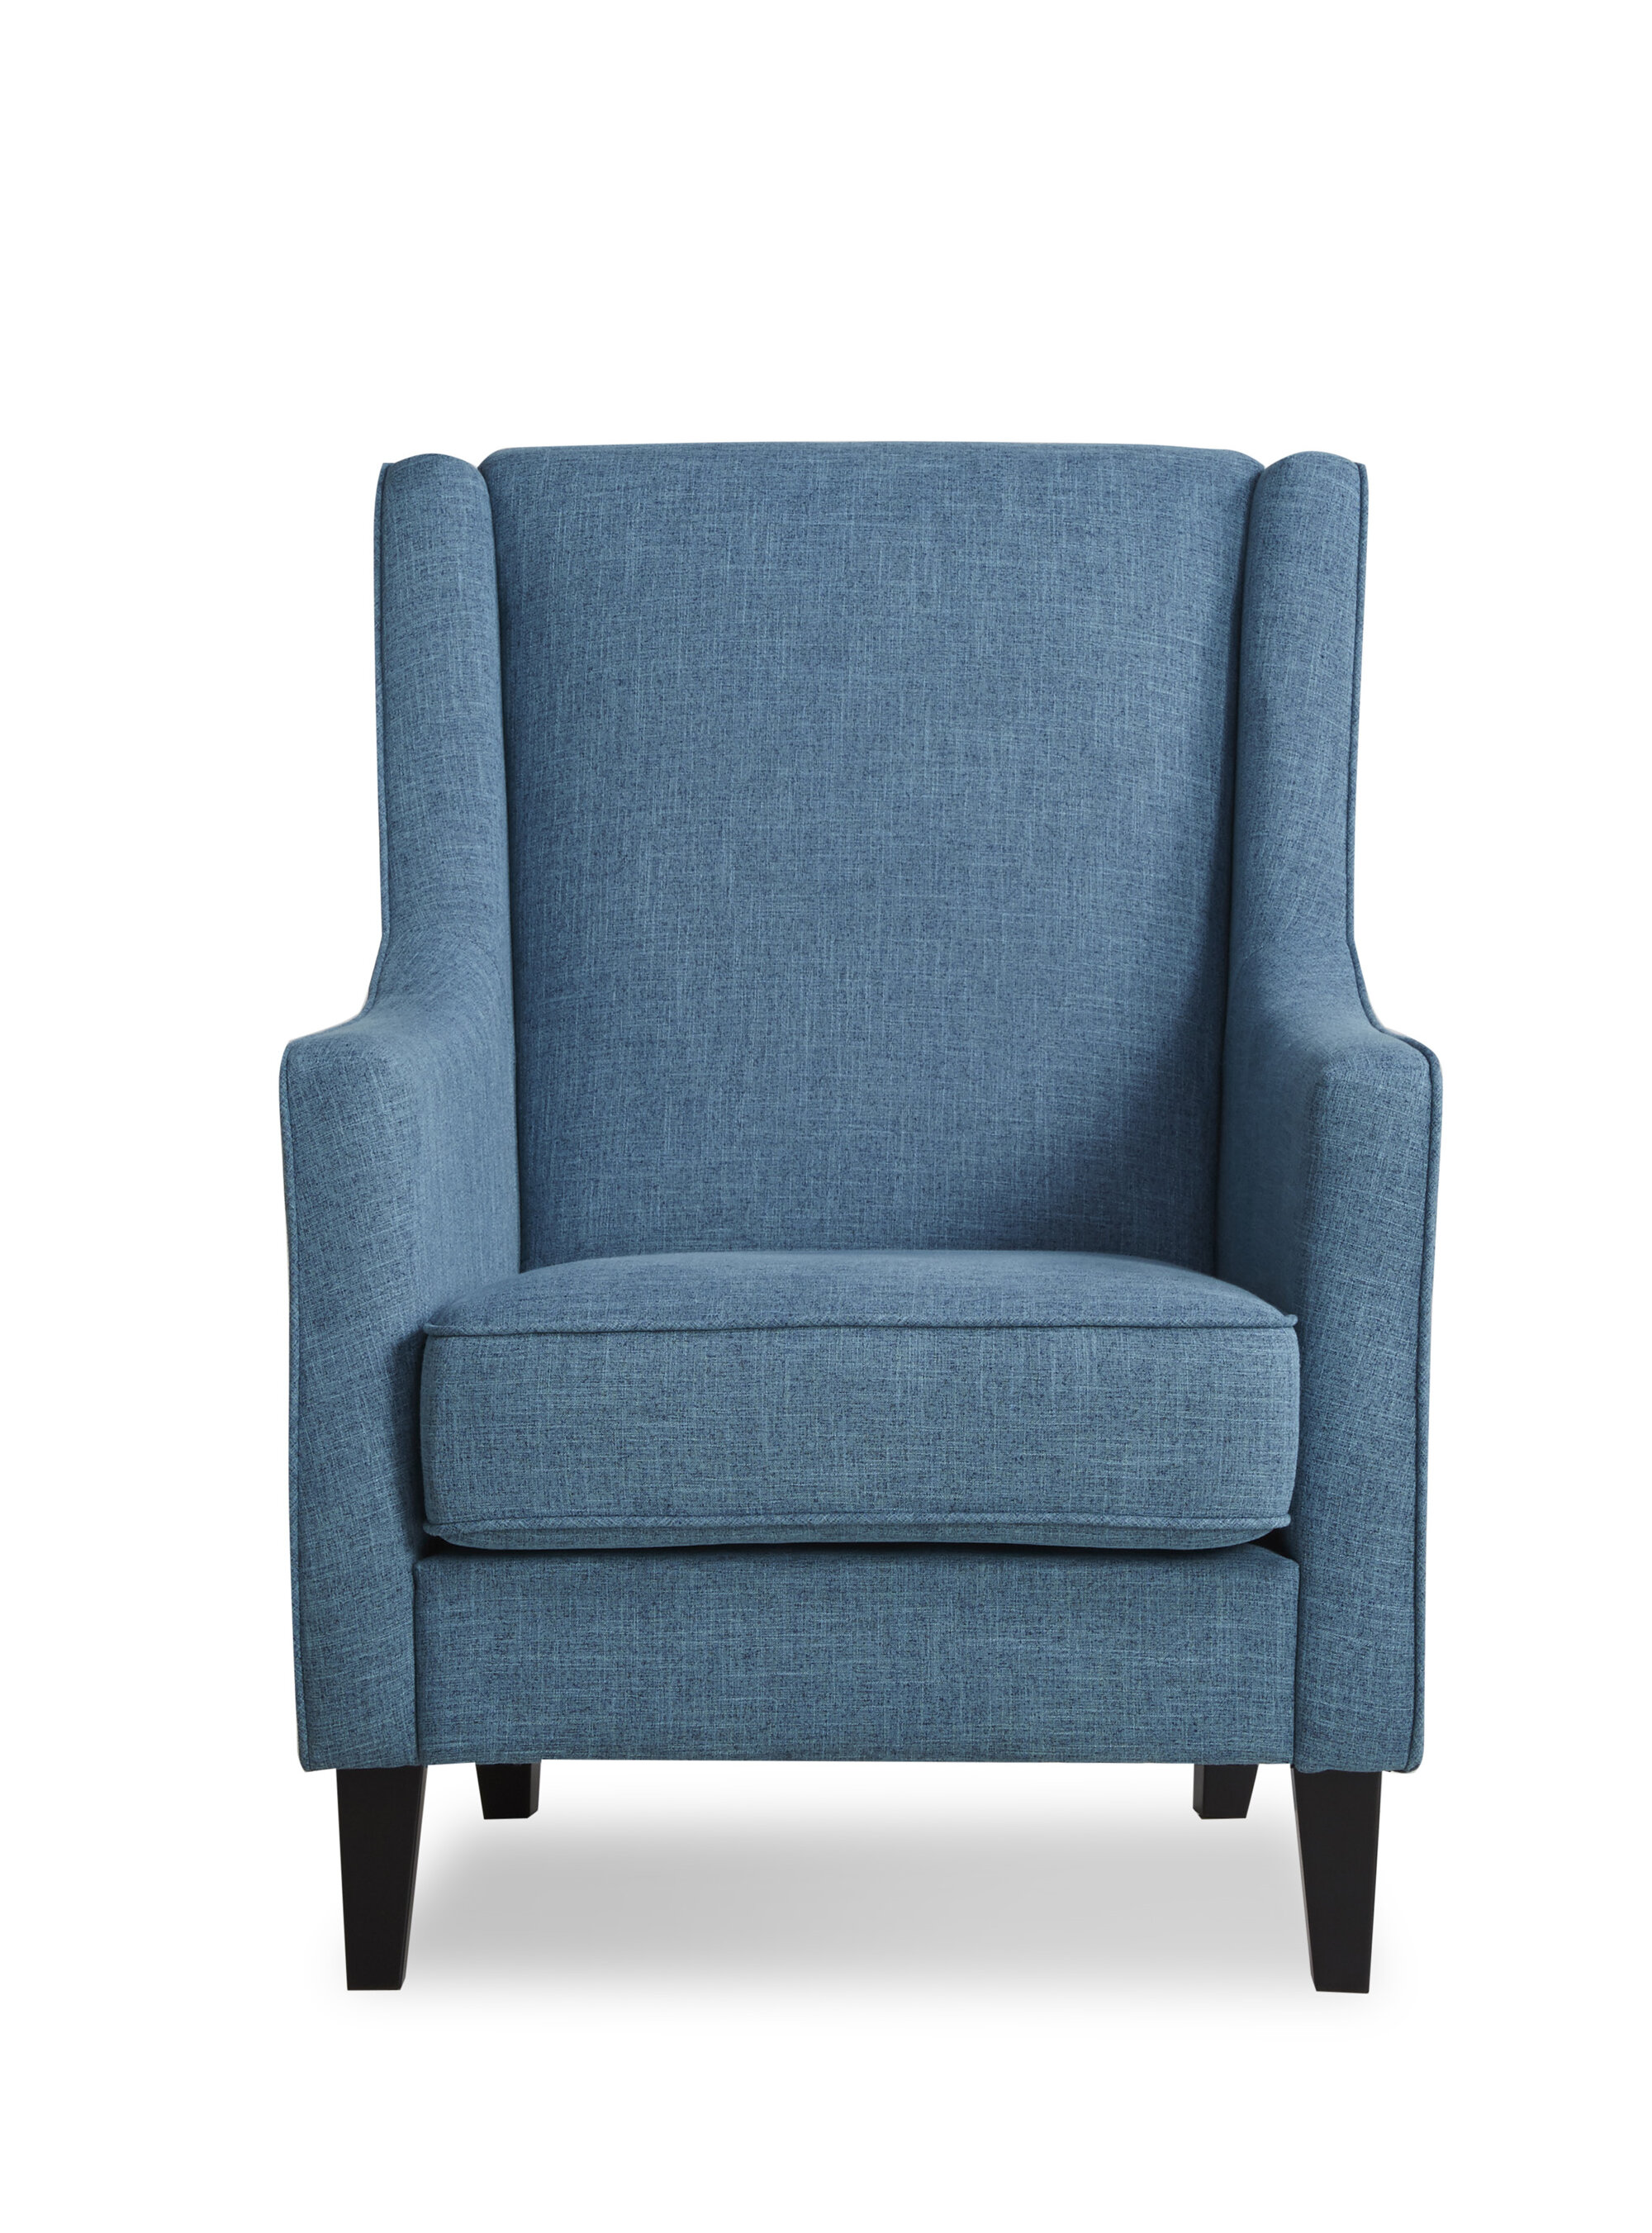 Nice Laurel Foundry Modern Farmhouse Brierwood High Back Armchair | Wayfair